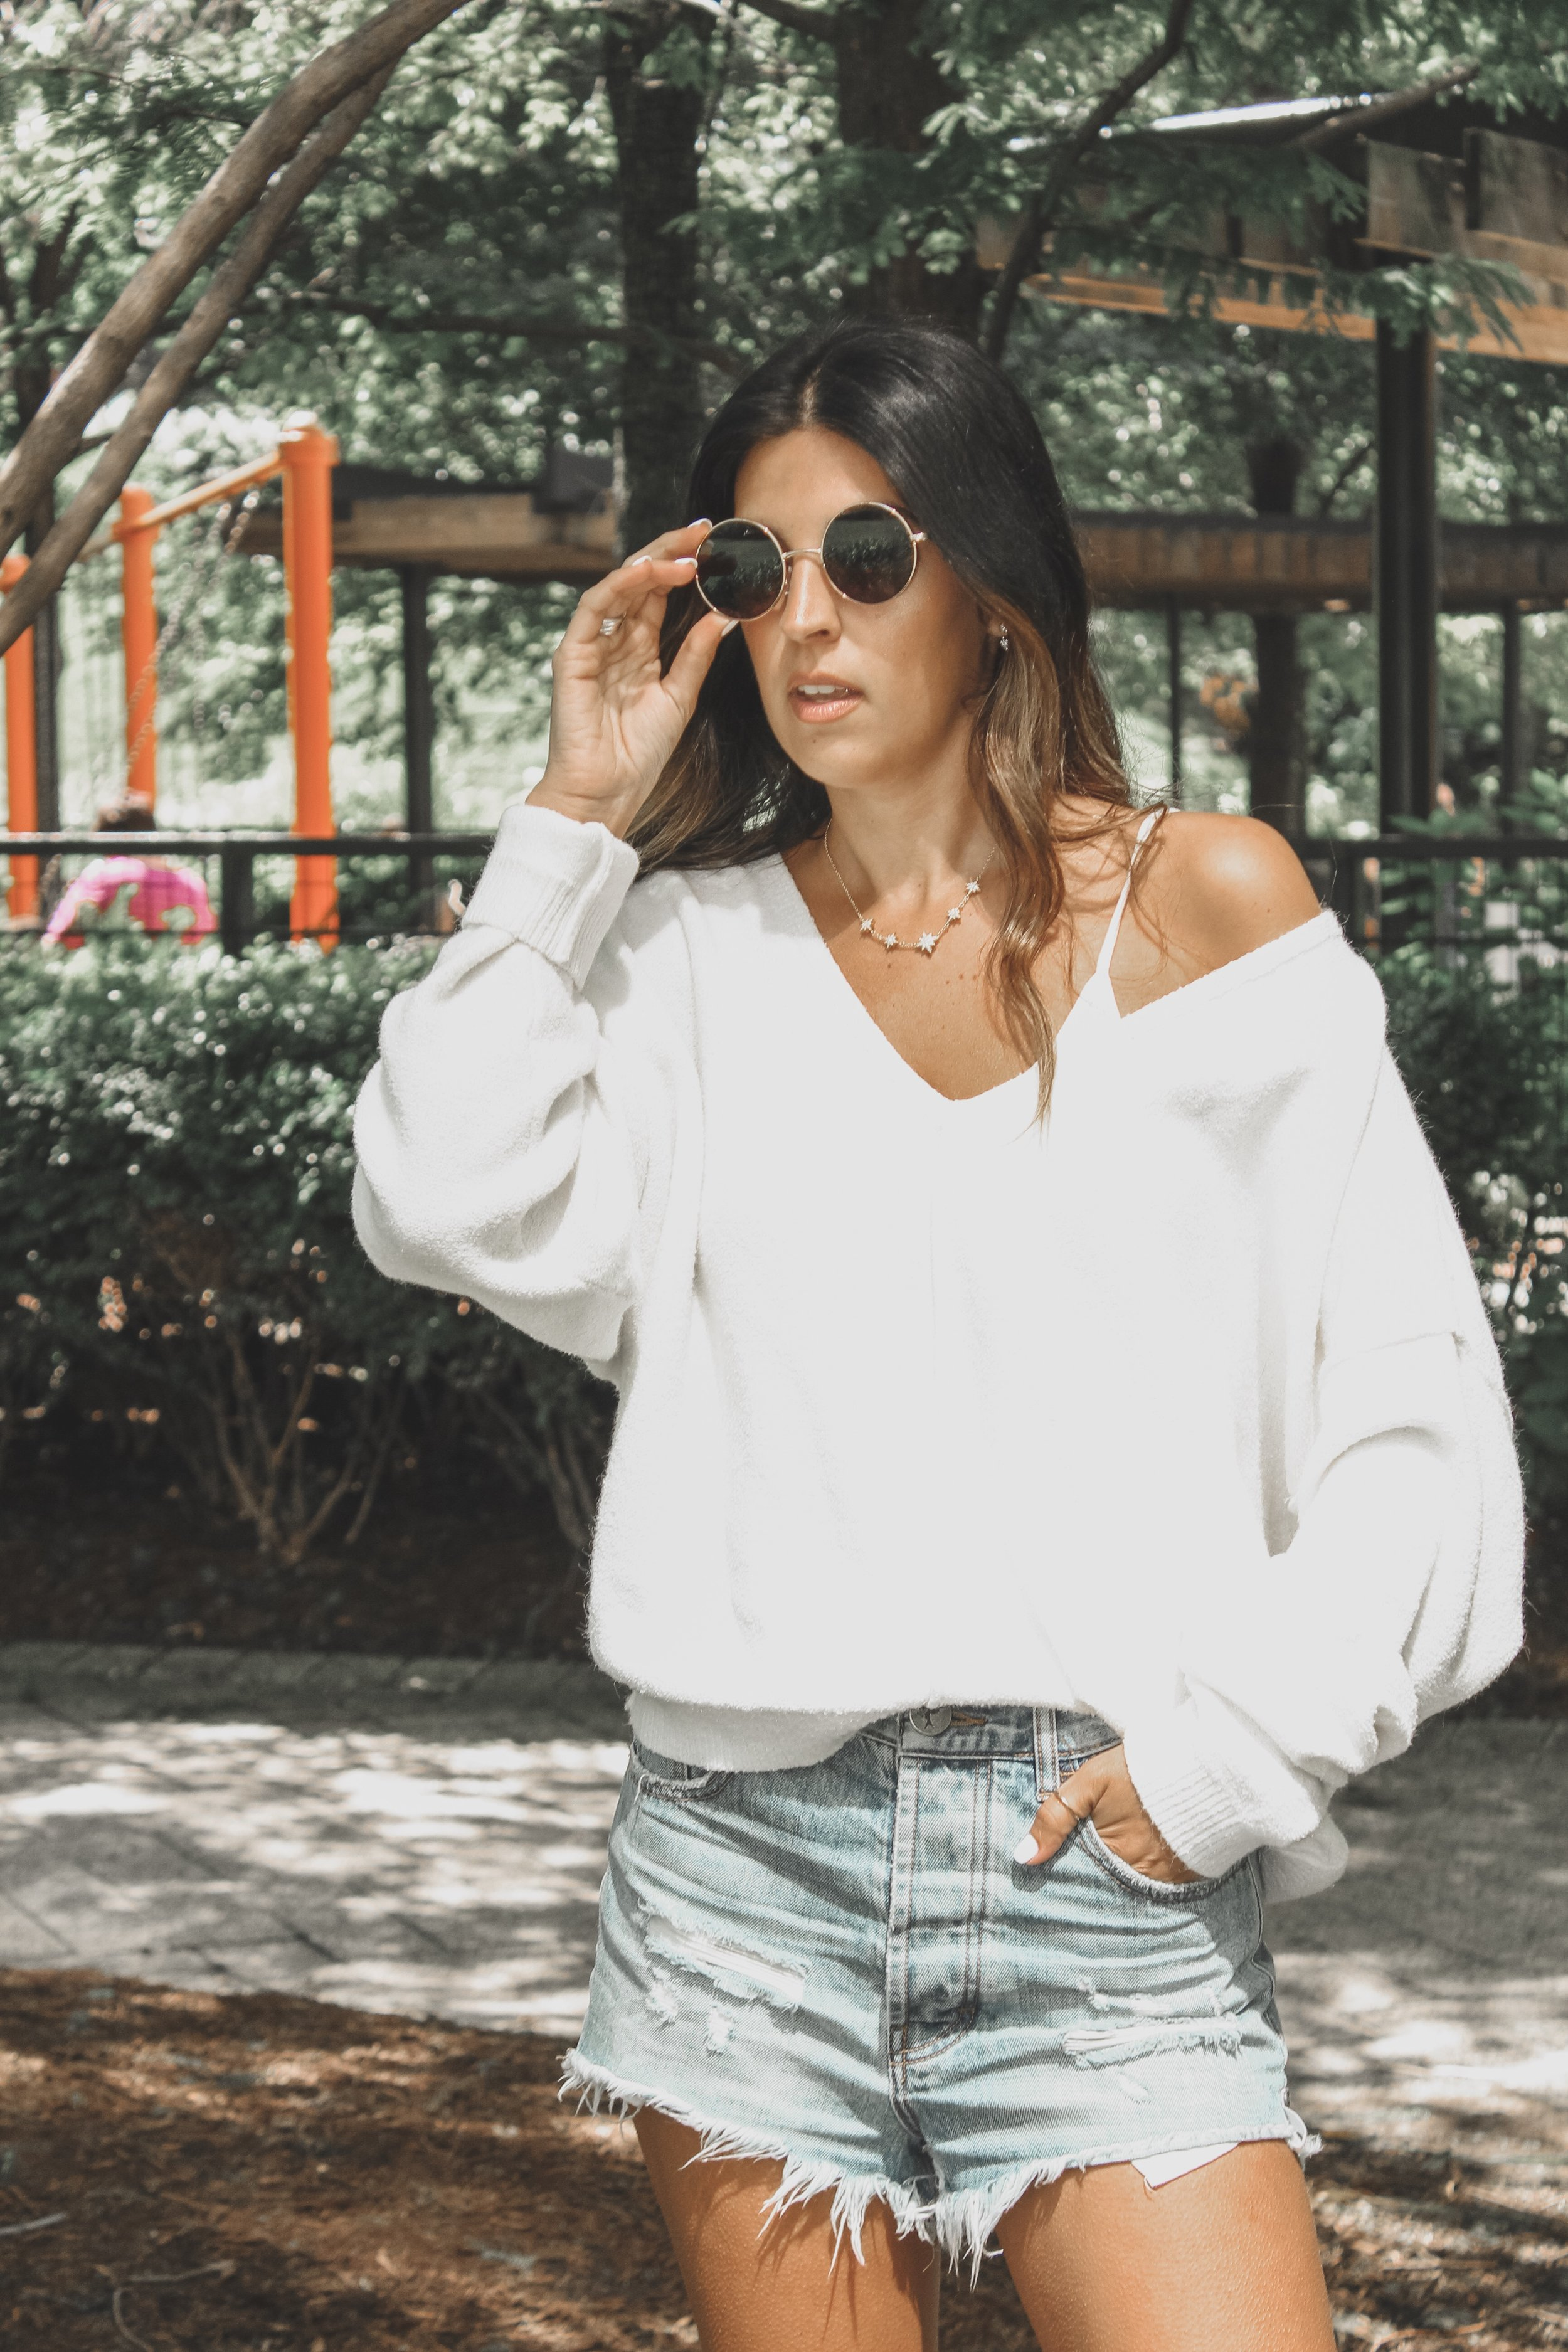 Outlaws Shorts -  shopbop  // Take Me Places Pullover -  Free People  // Sunnies -  Forever21  // (similar) Floral Booties -  Sam Edelman  // 14K Gold Rings -  Glamrocks Jewelry